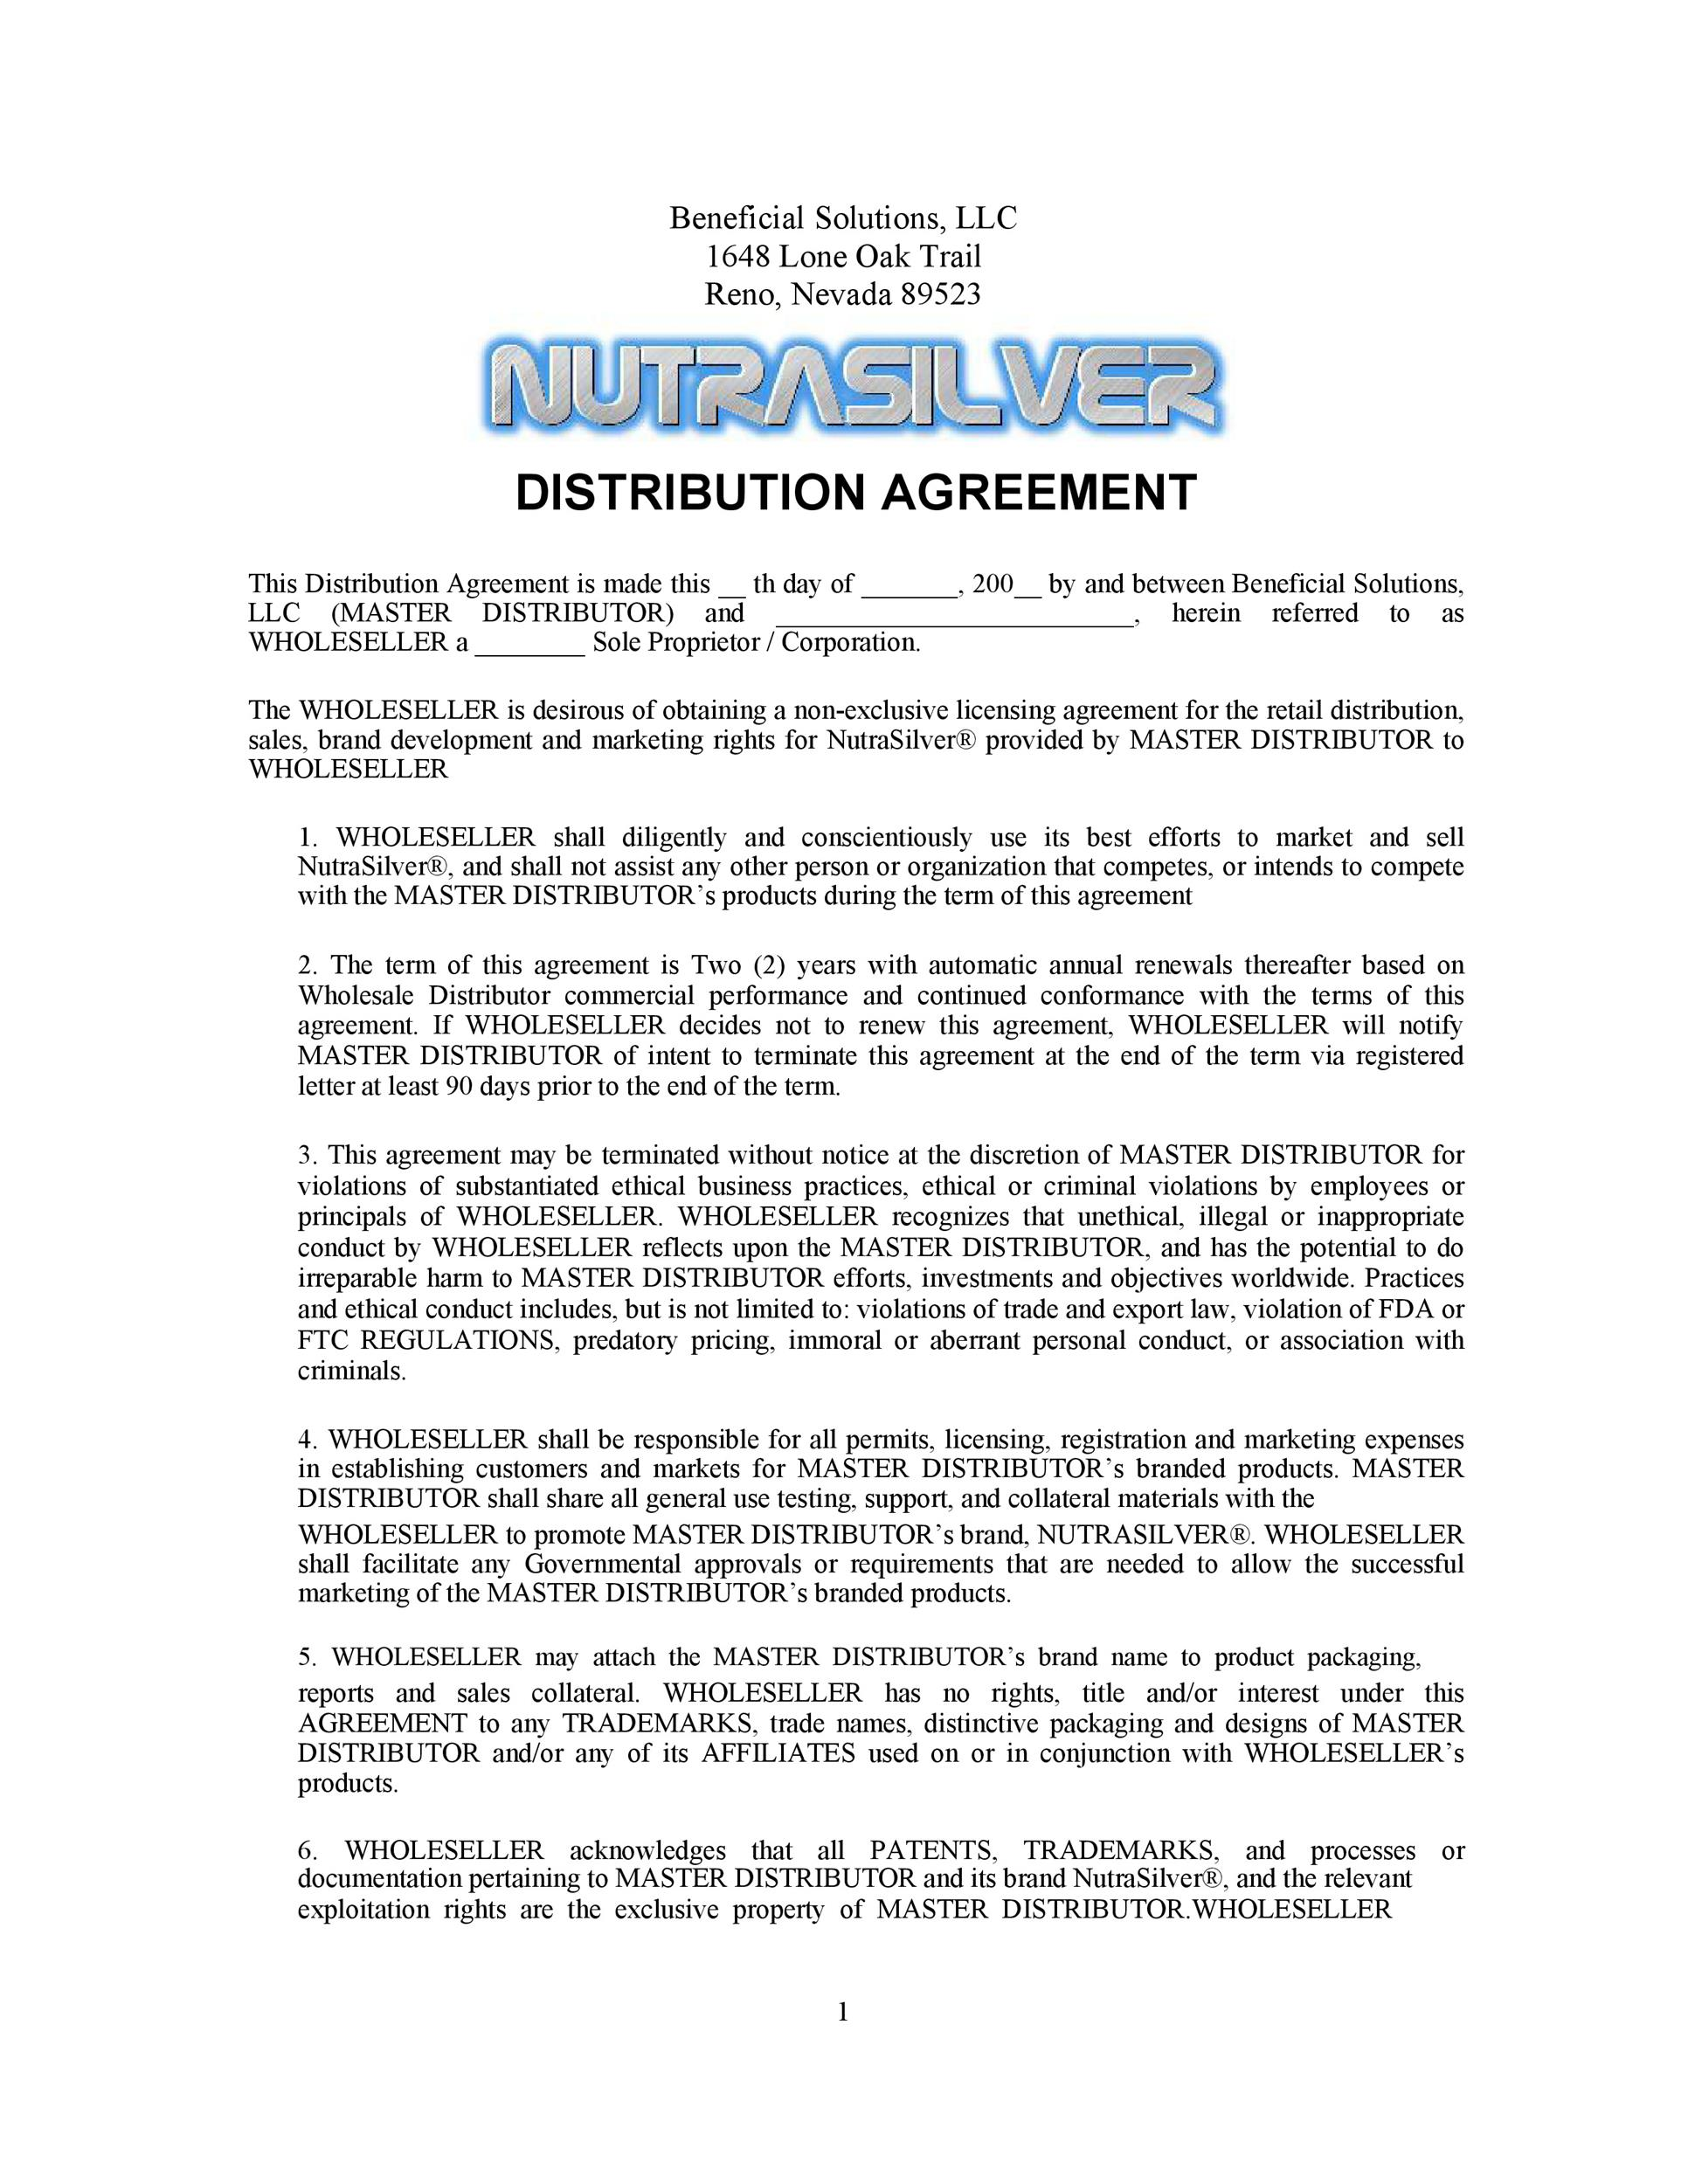 Free distribution agreement 08